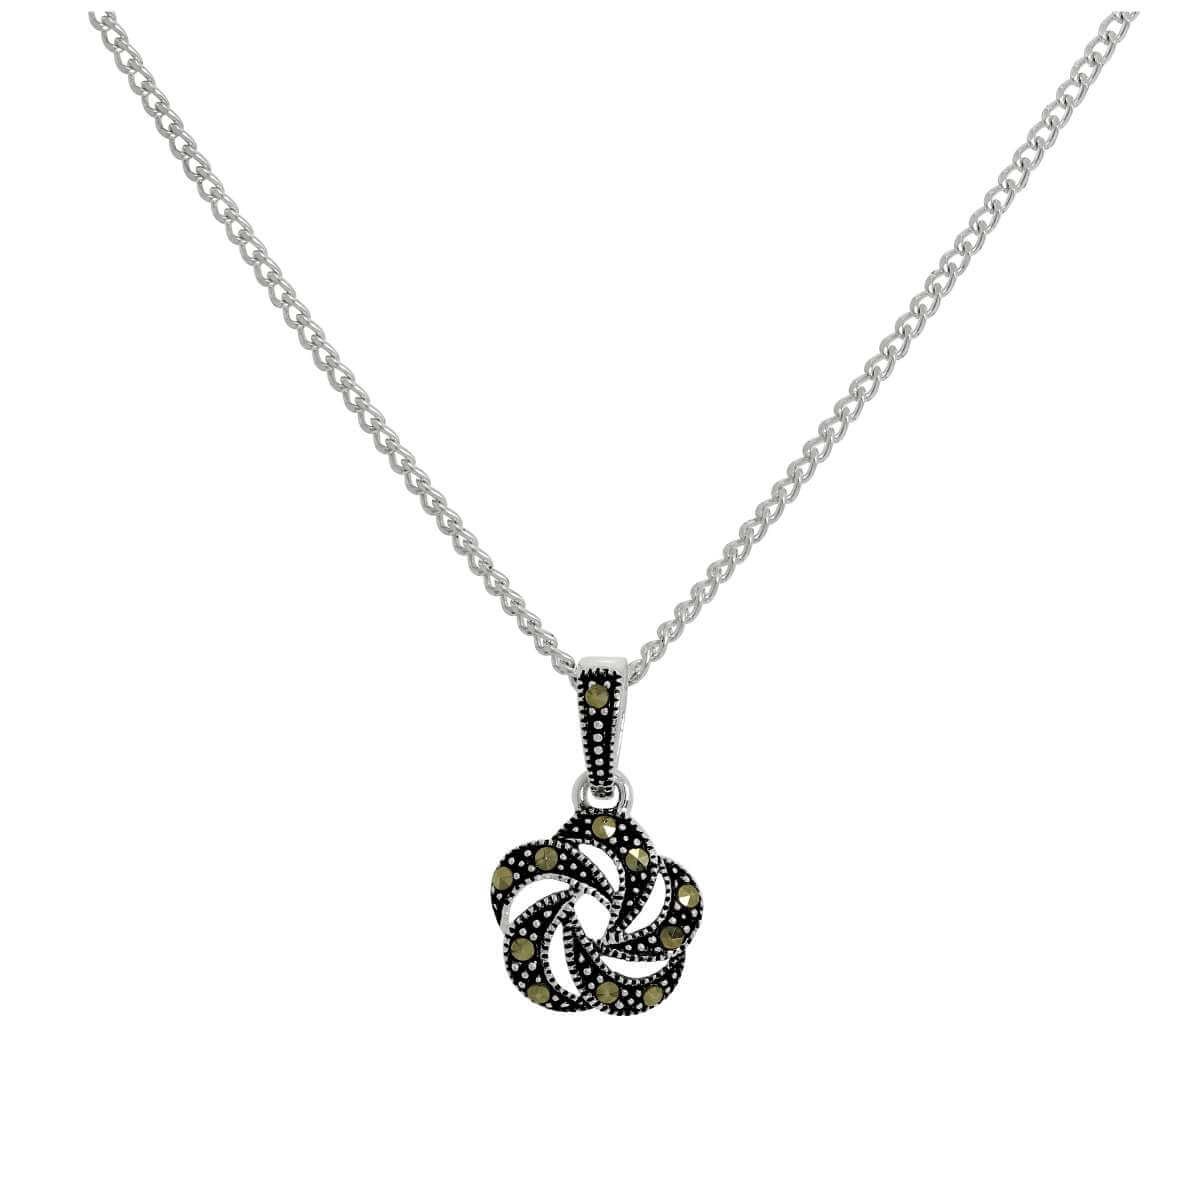 Sterling Silver & Marcasite Black Open Flower Pendant Necklace 16 - 24 Inches